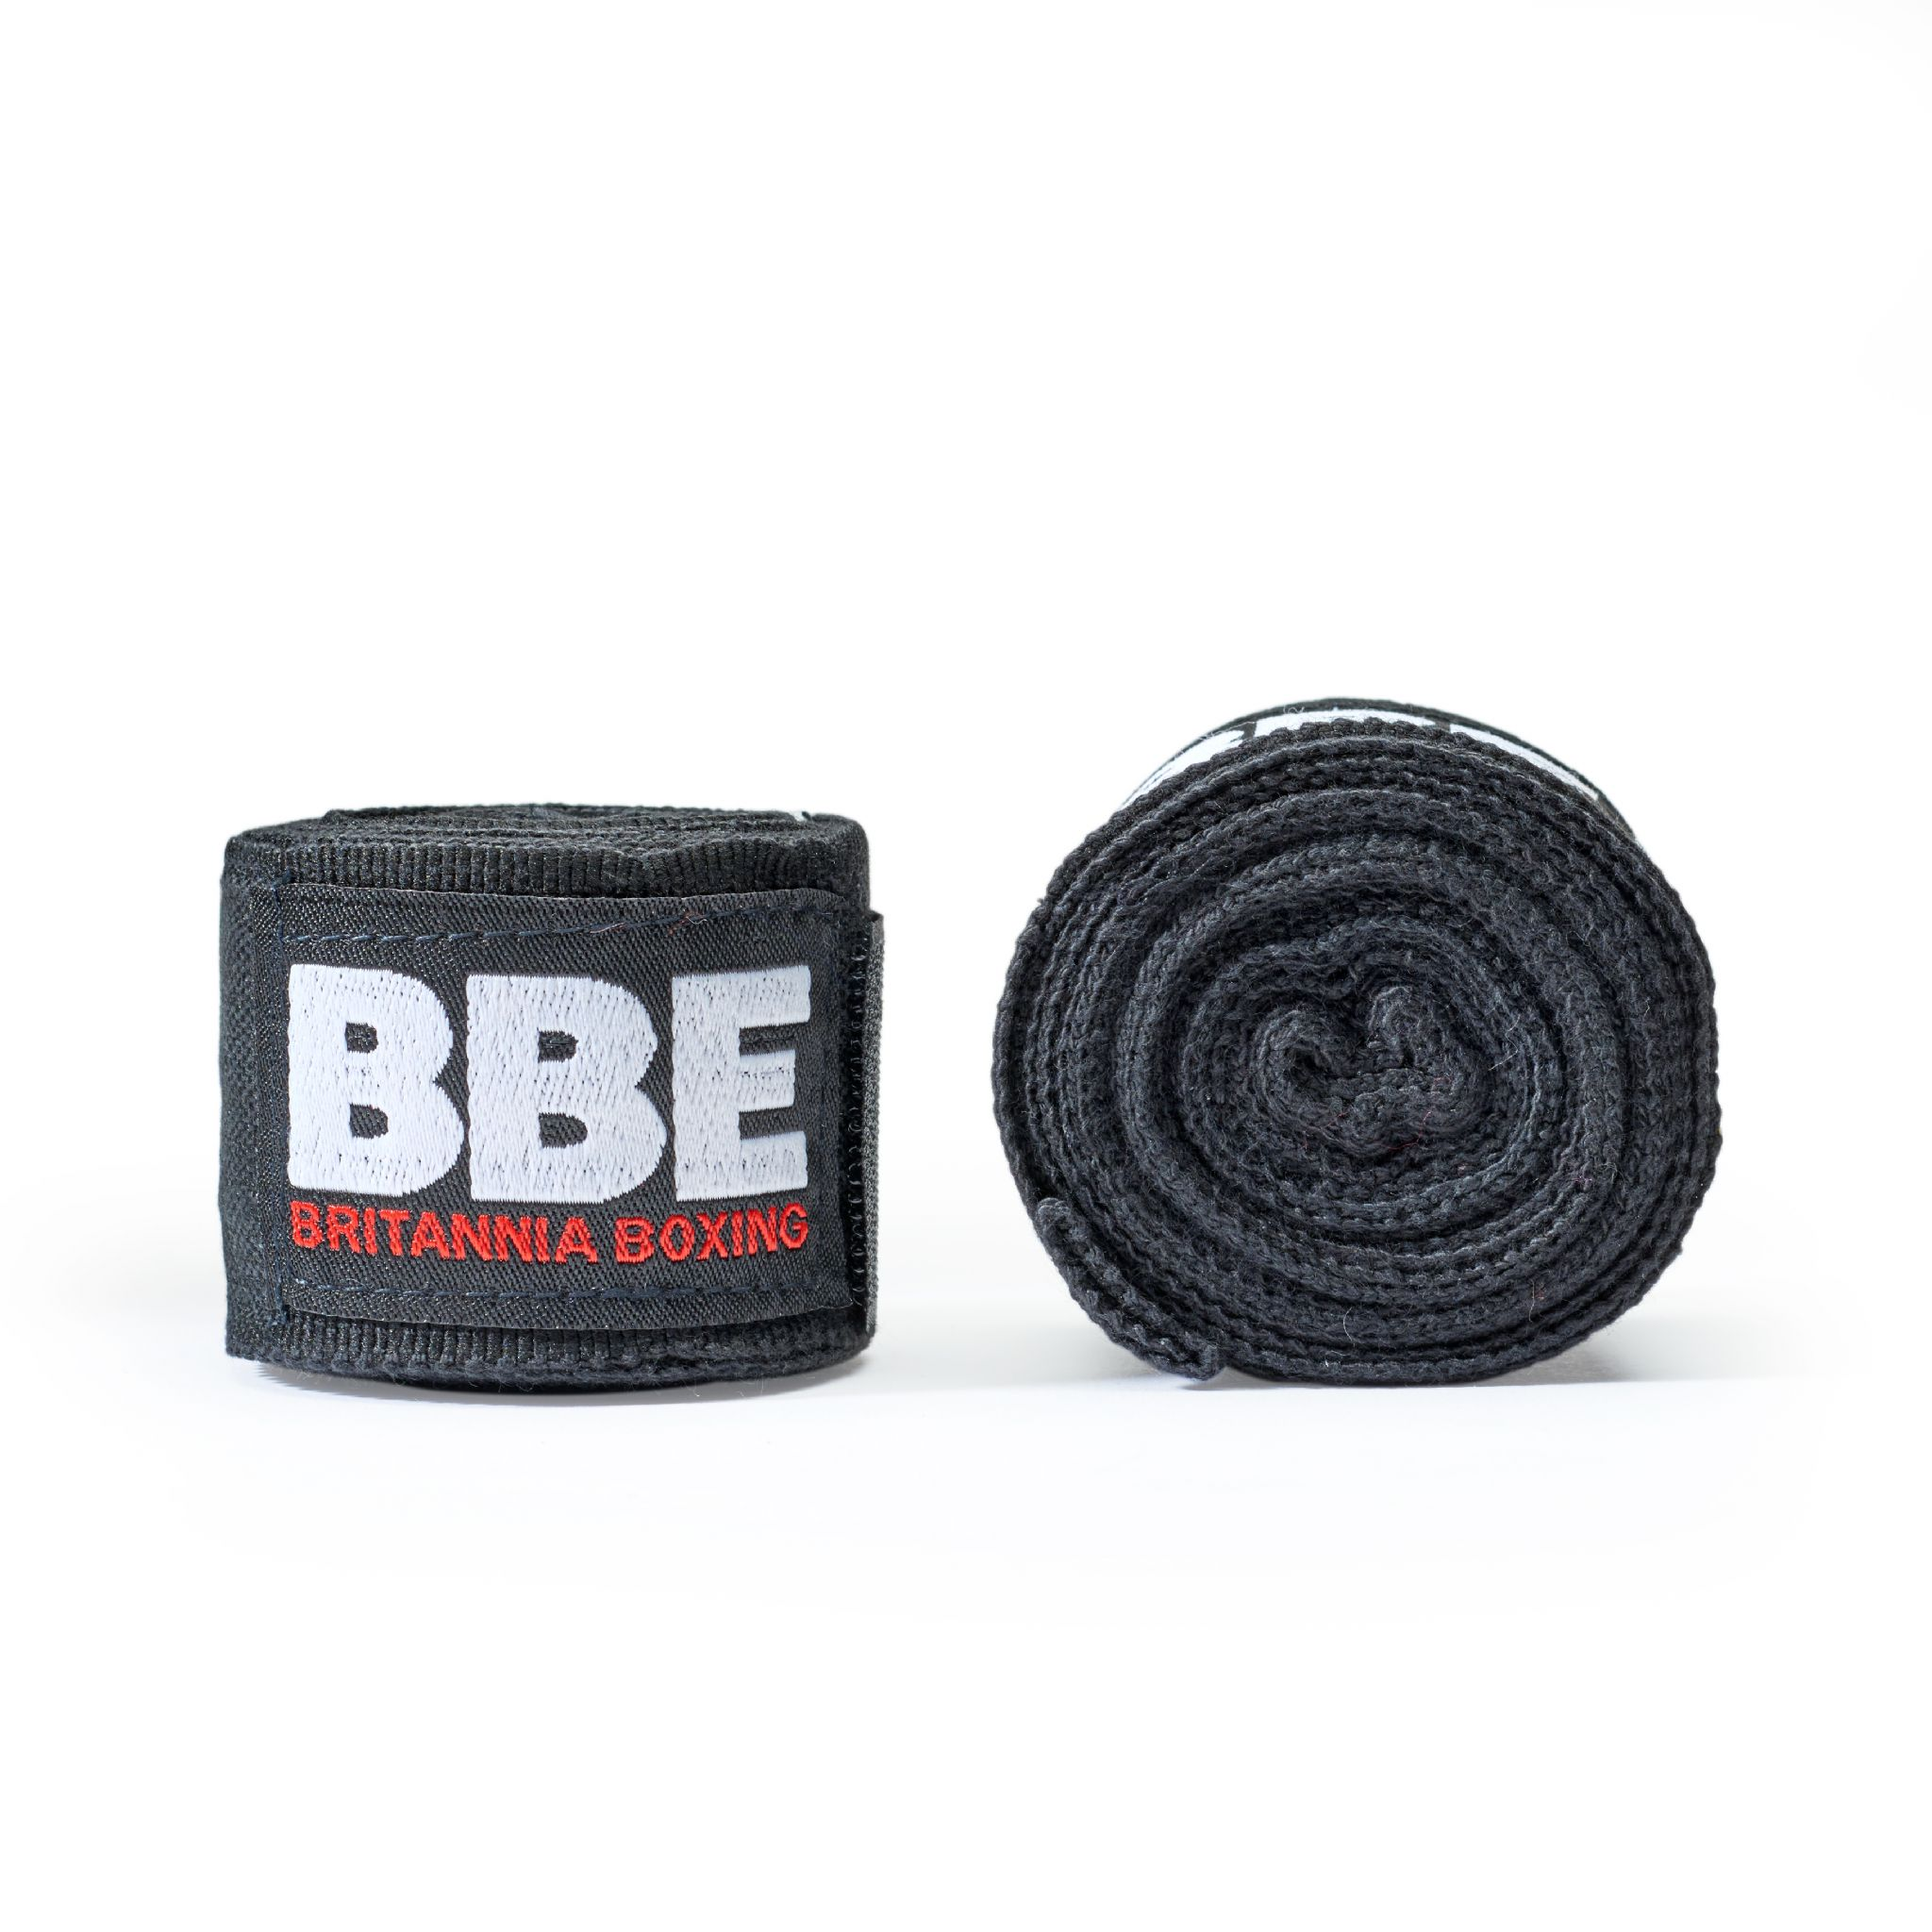 BBE Hand Wraps